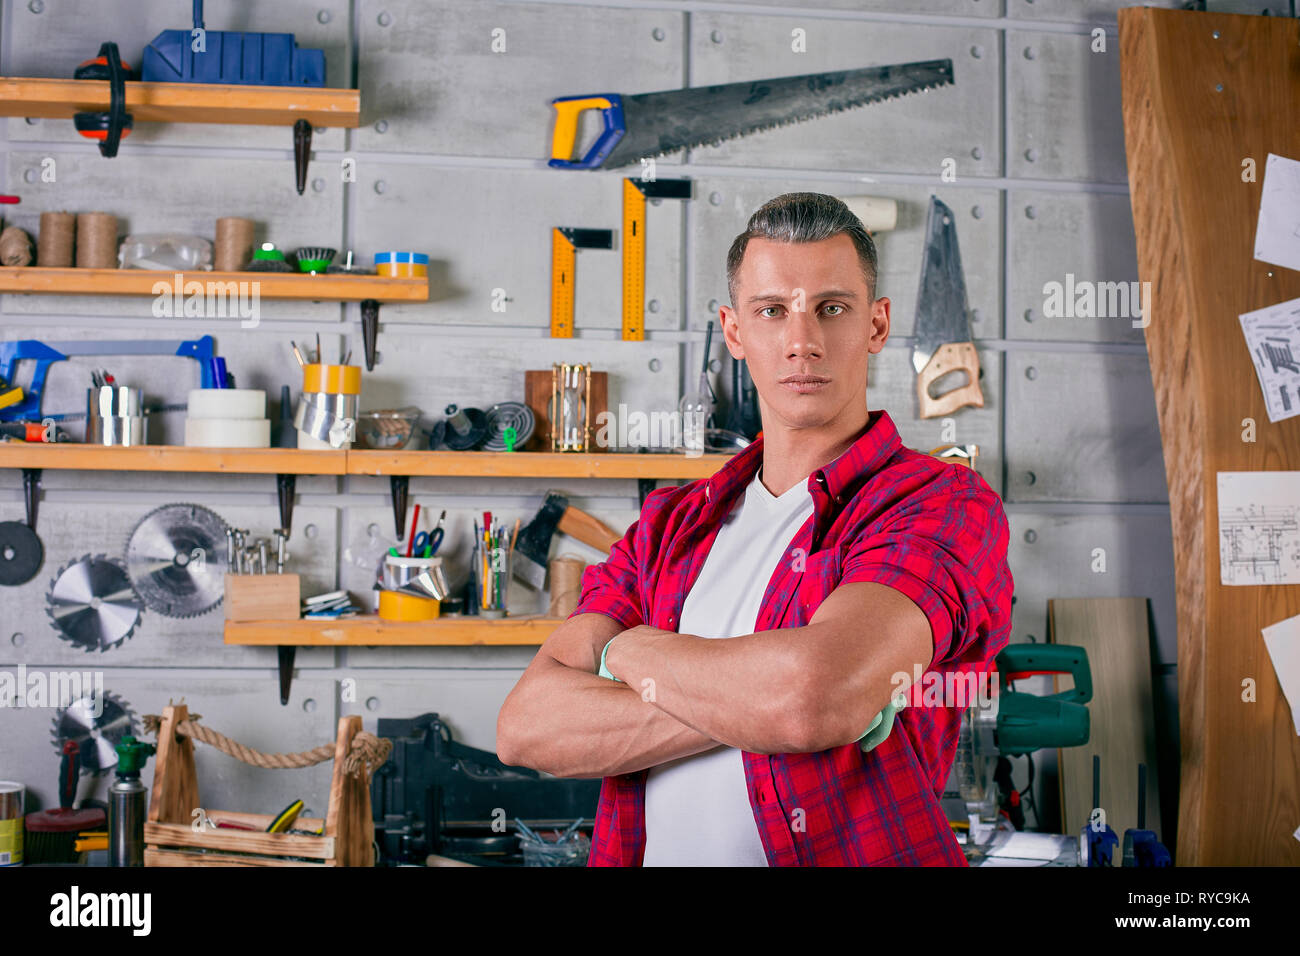 locksmith stands in the workshop on the background of the wall with shelves under the tools - Stock Image